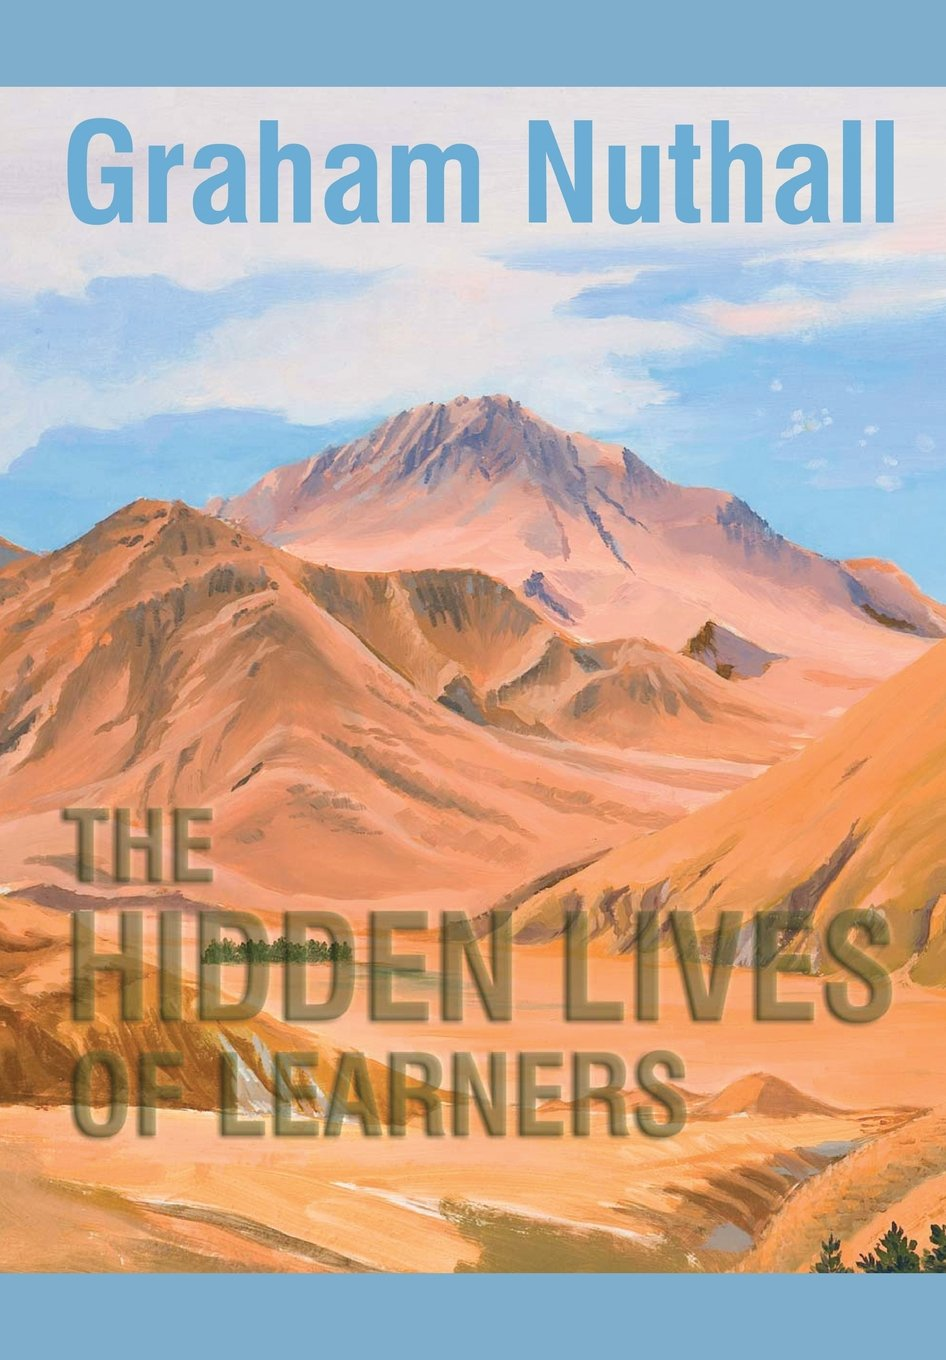 Reflections on The Hidden Lives of Learners